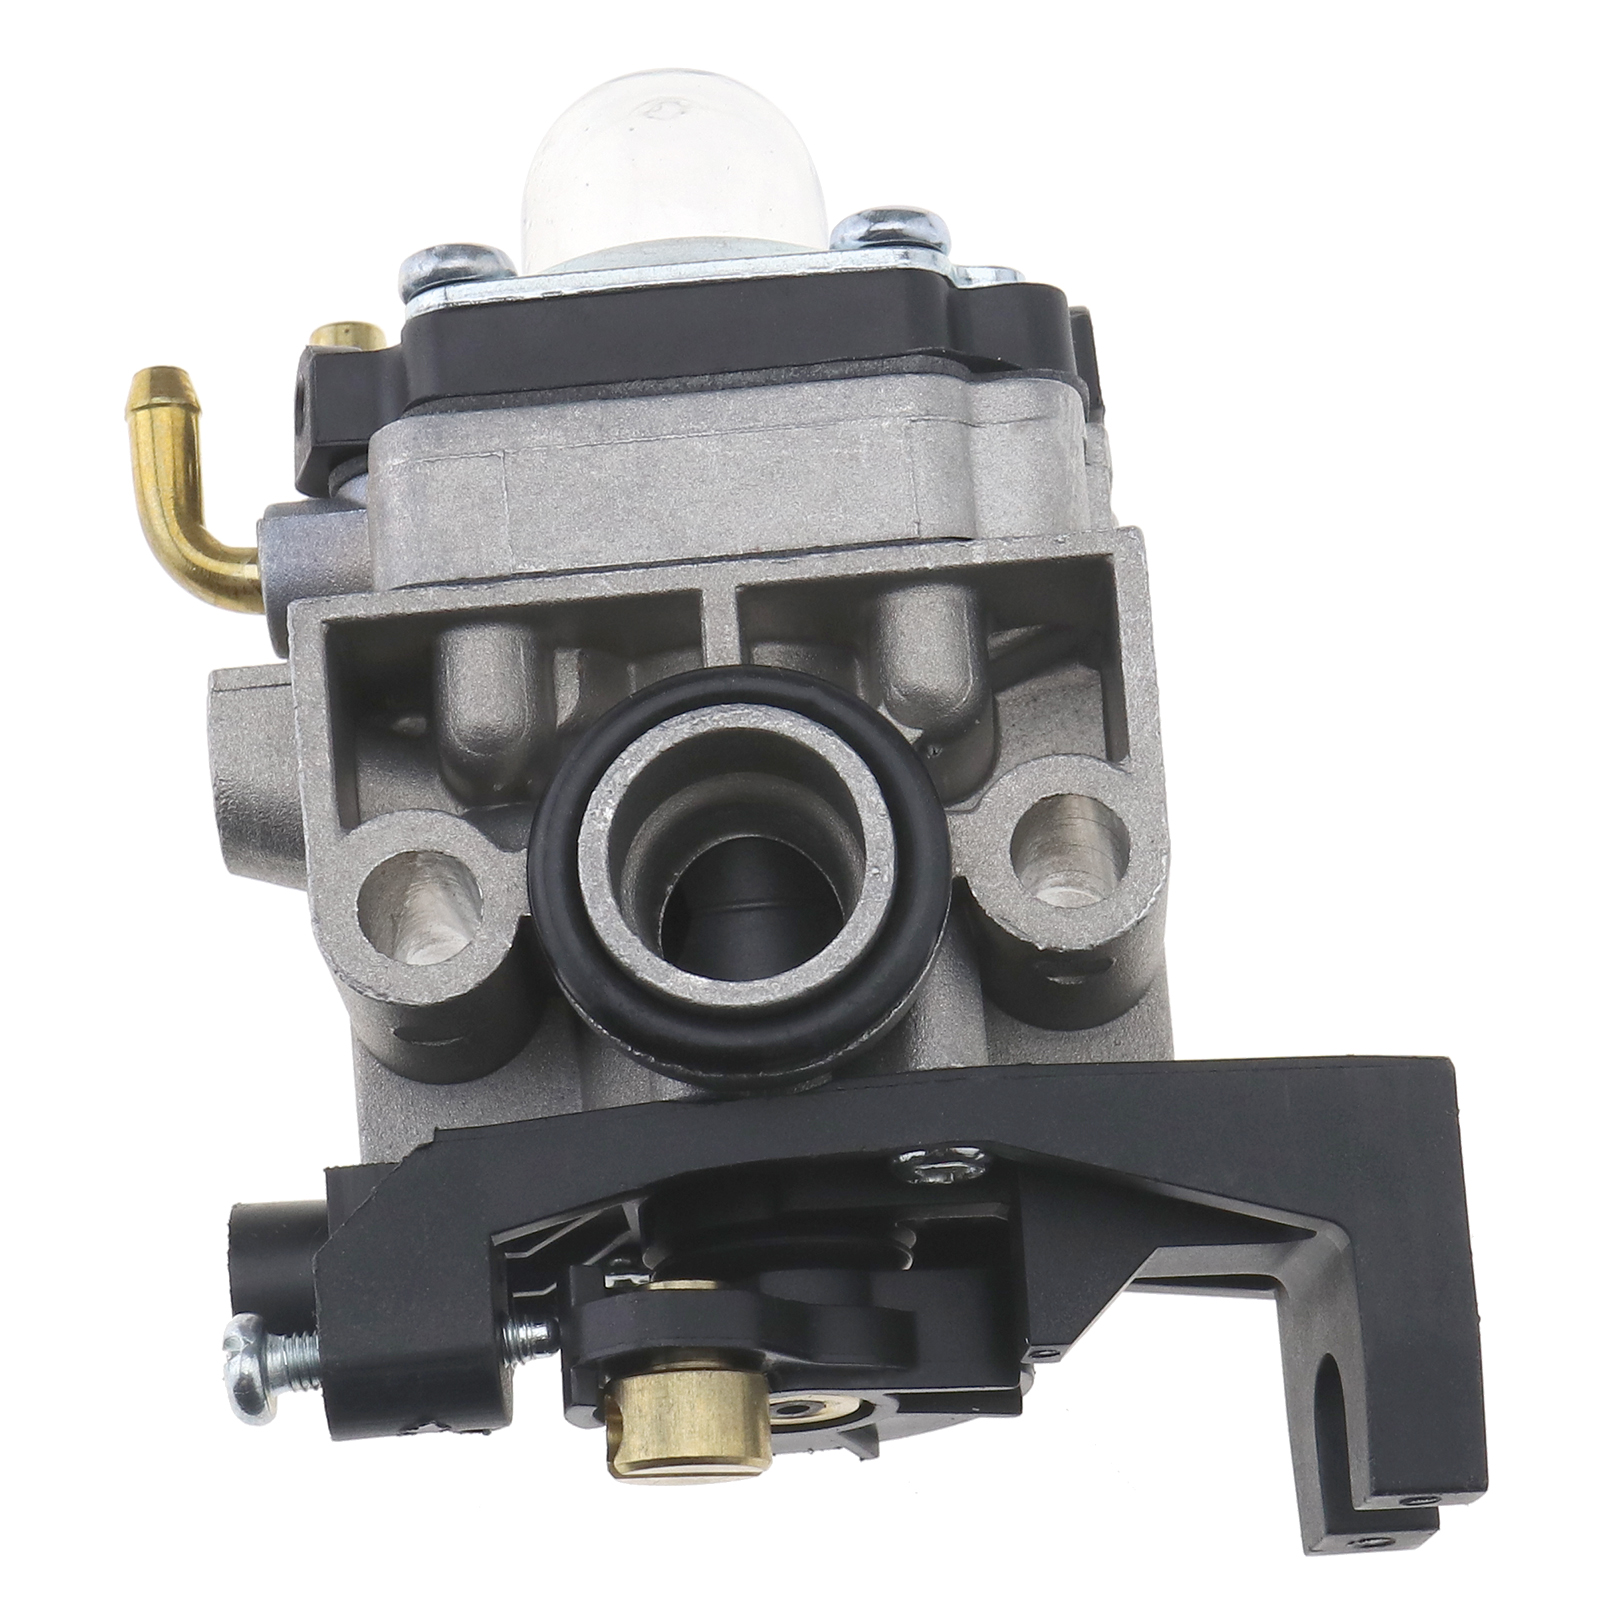 Trimmer Carburetor For Honda GX25 GX35 Engine with Oil Cup ...